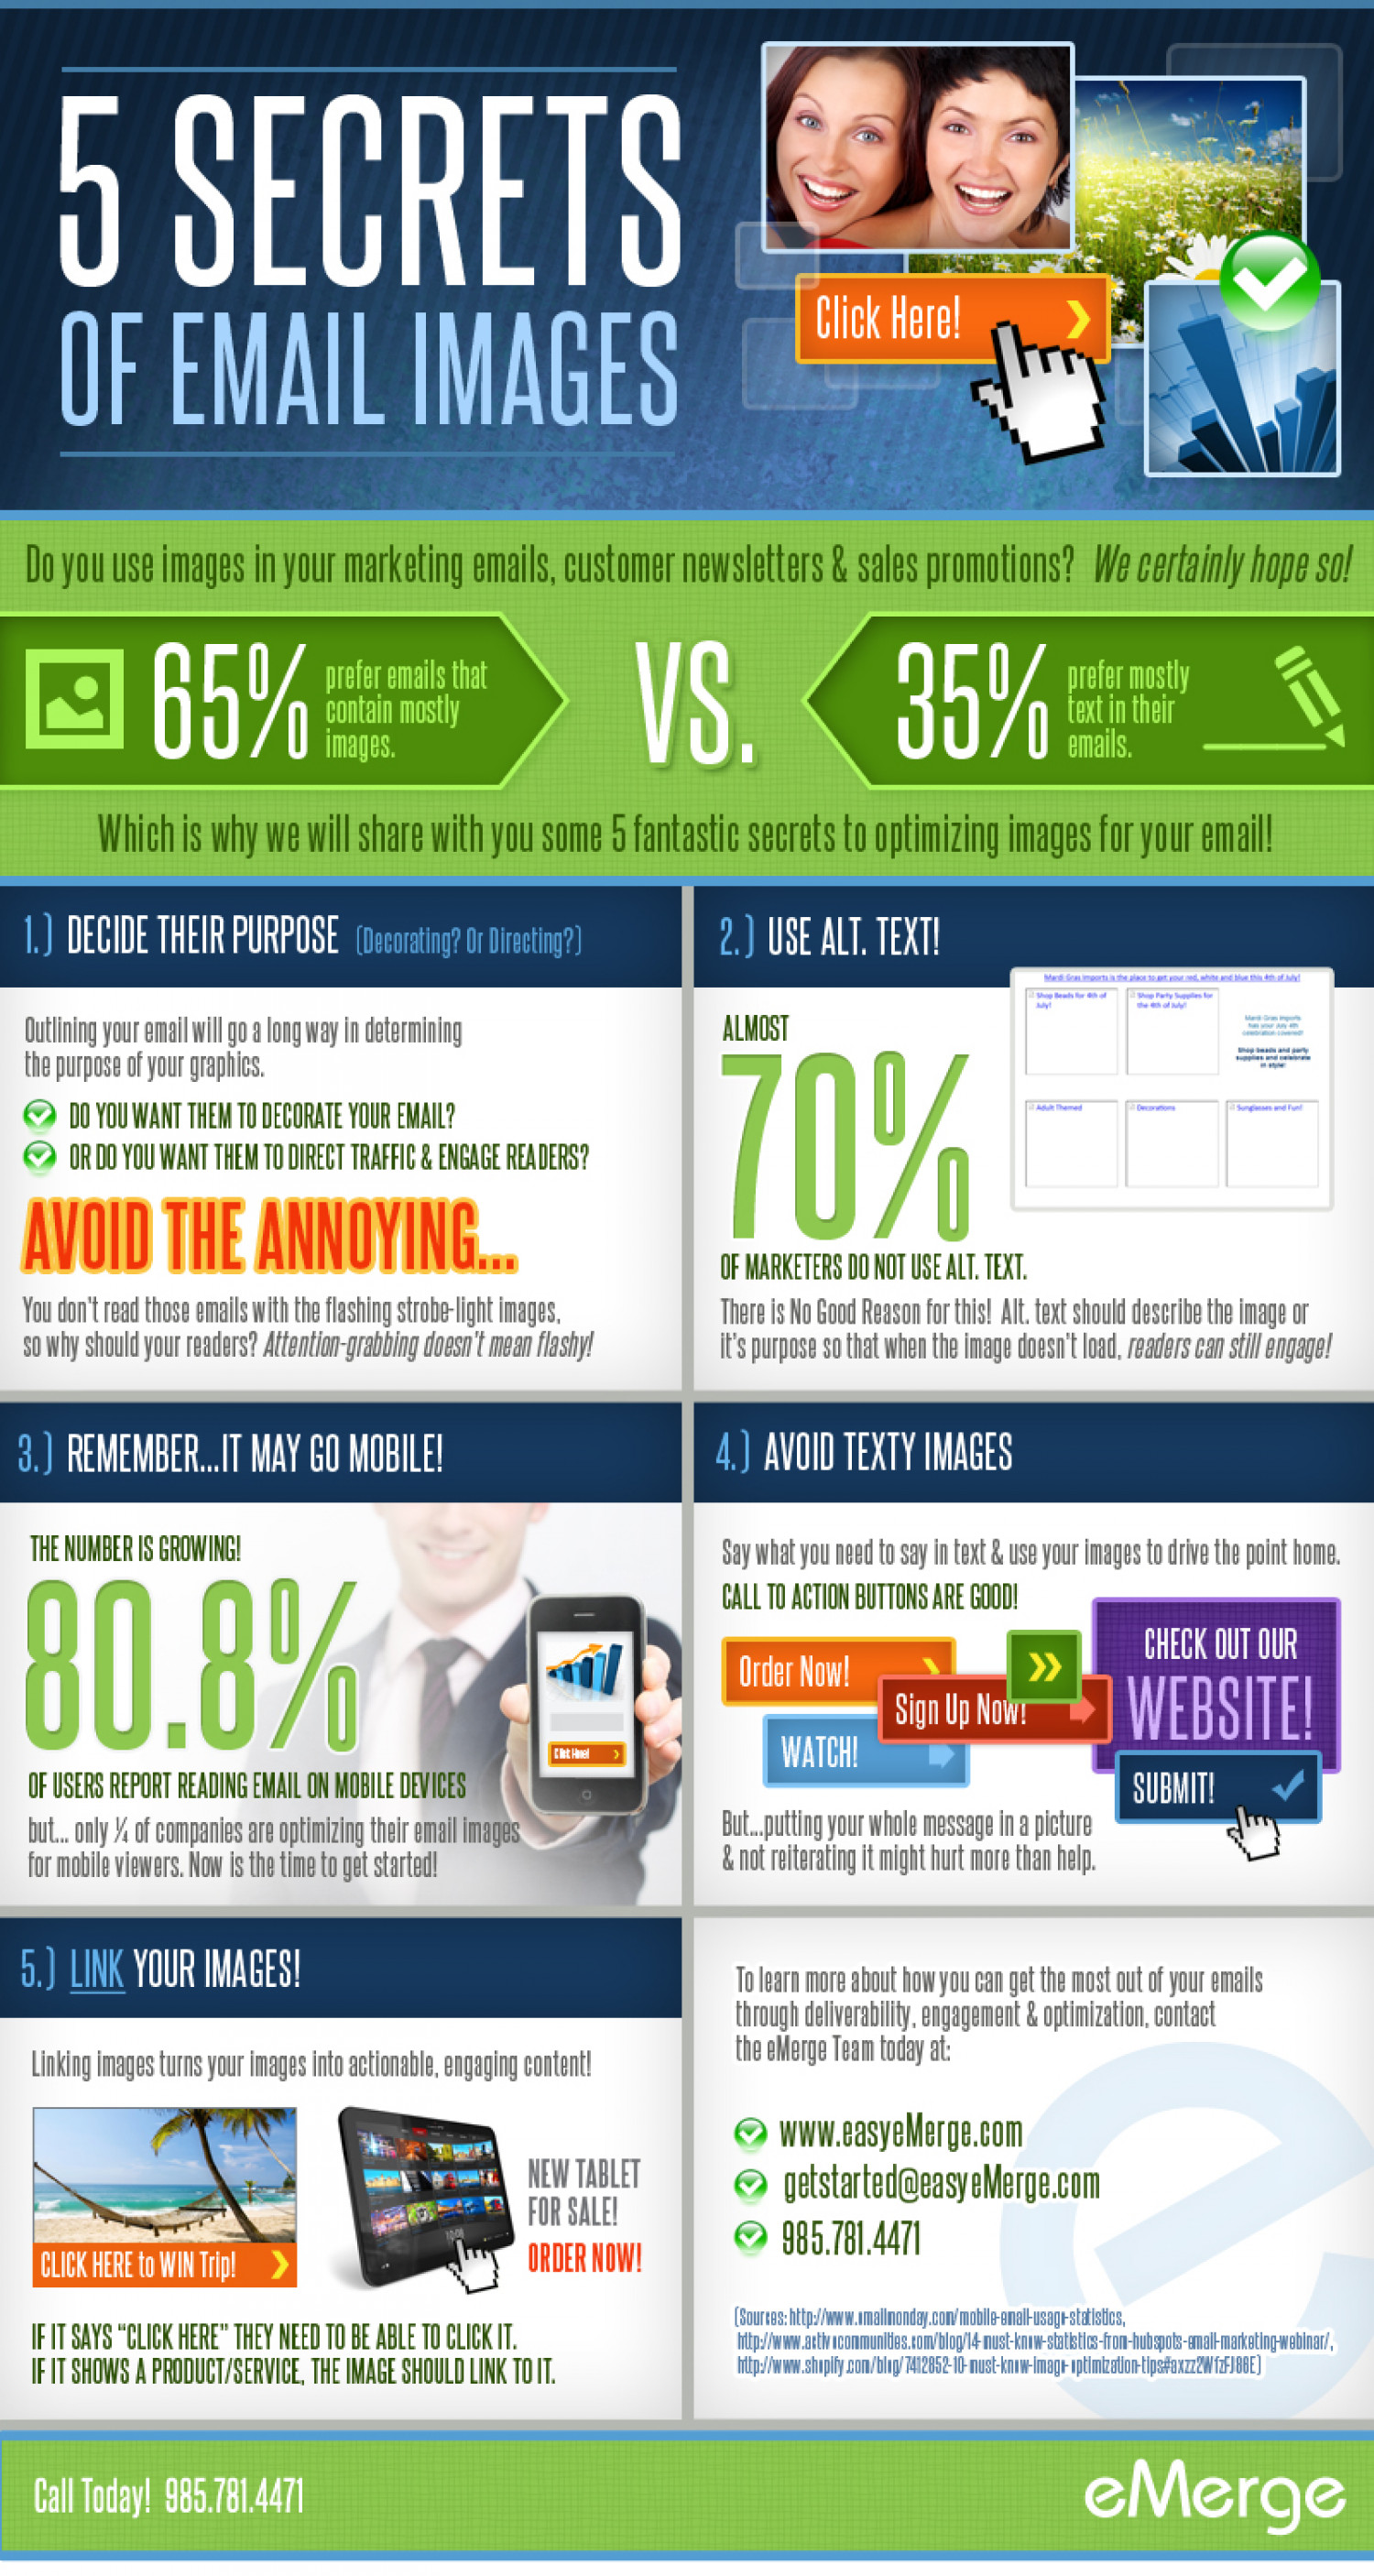 5 Secrets Of Email Images Infographic